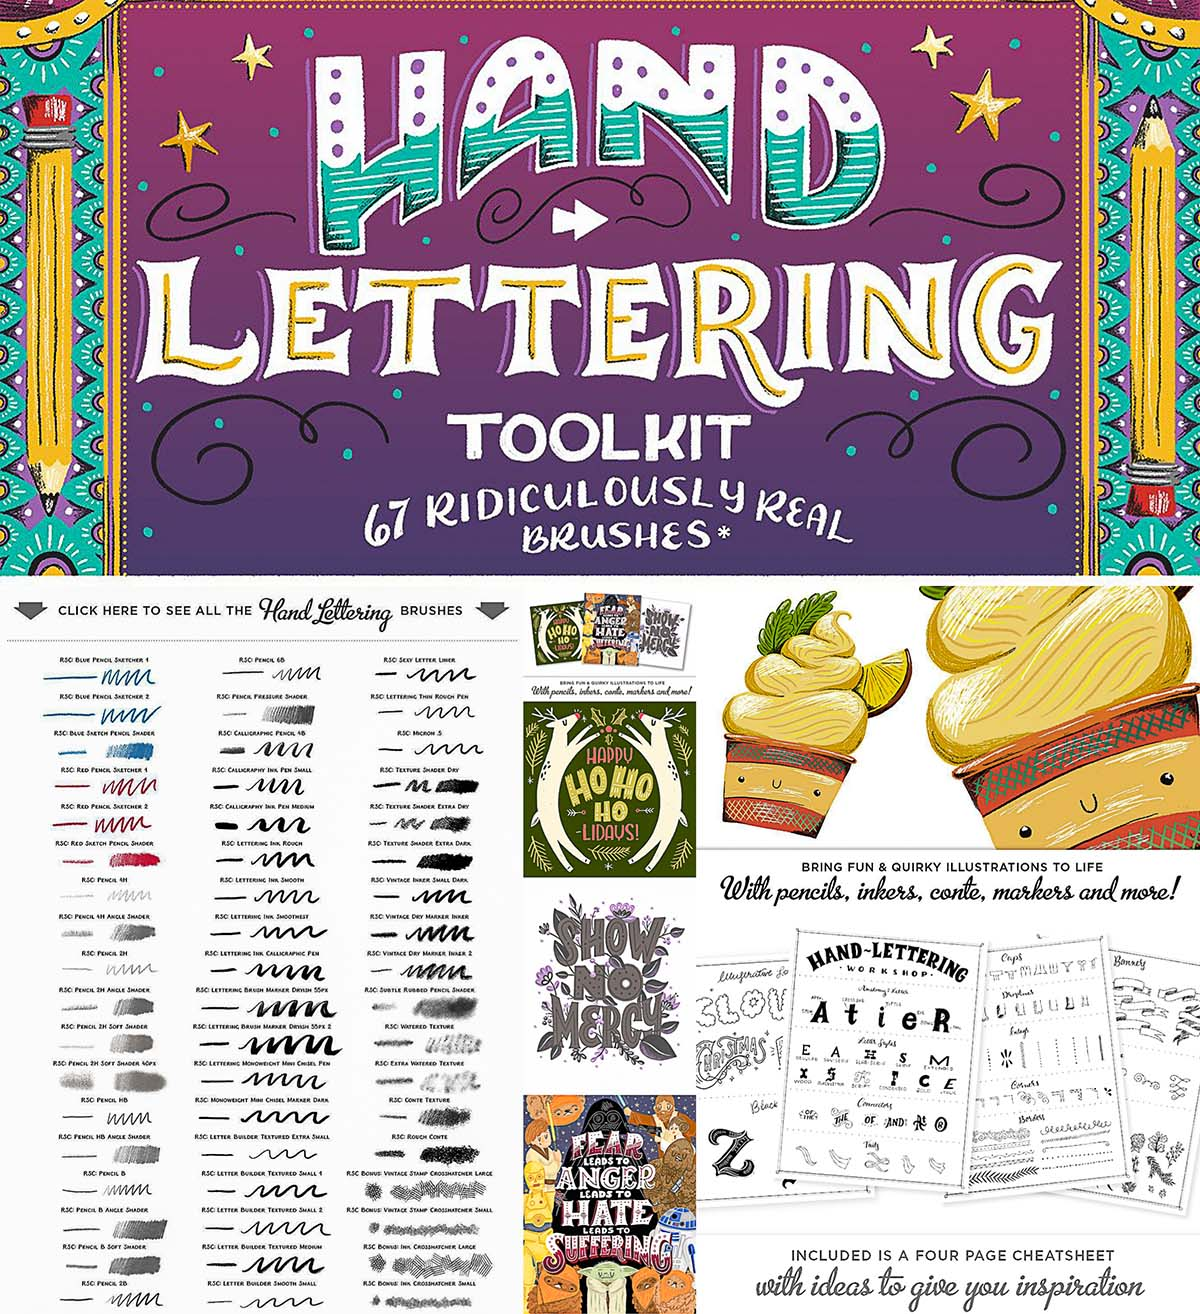 Hand lettering toolkit